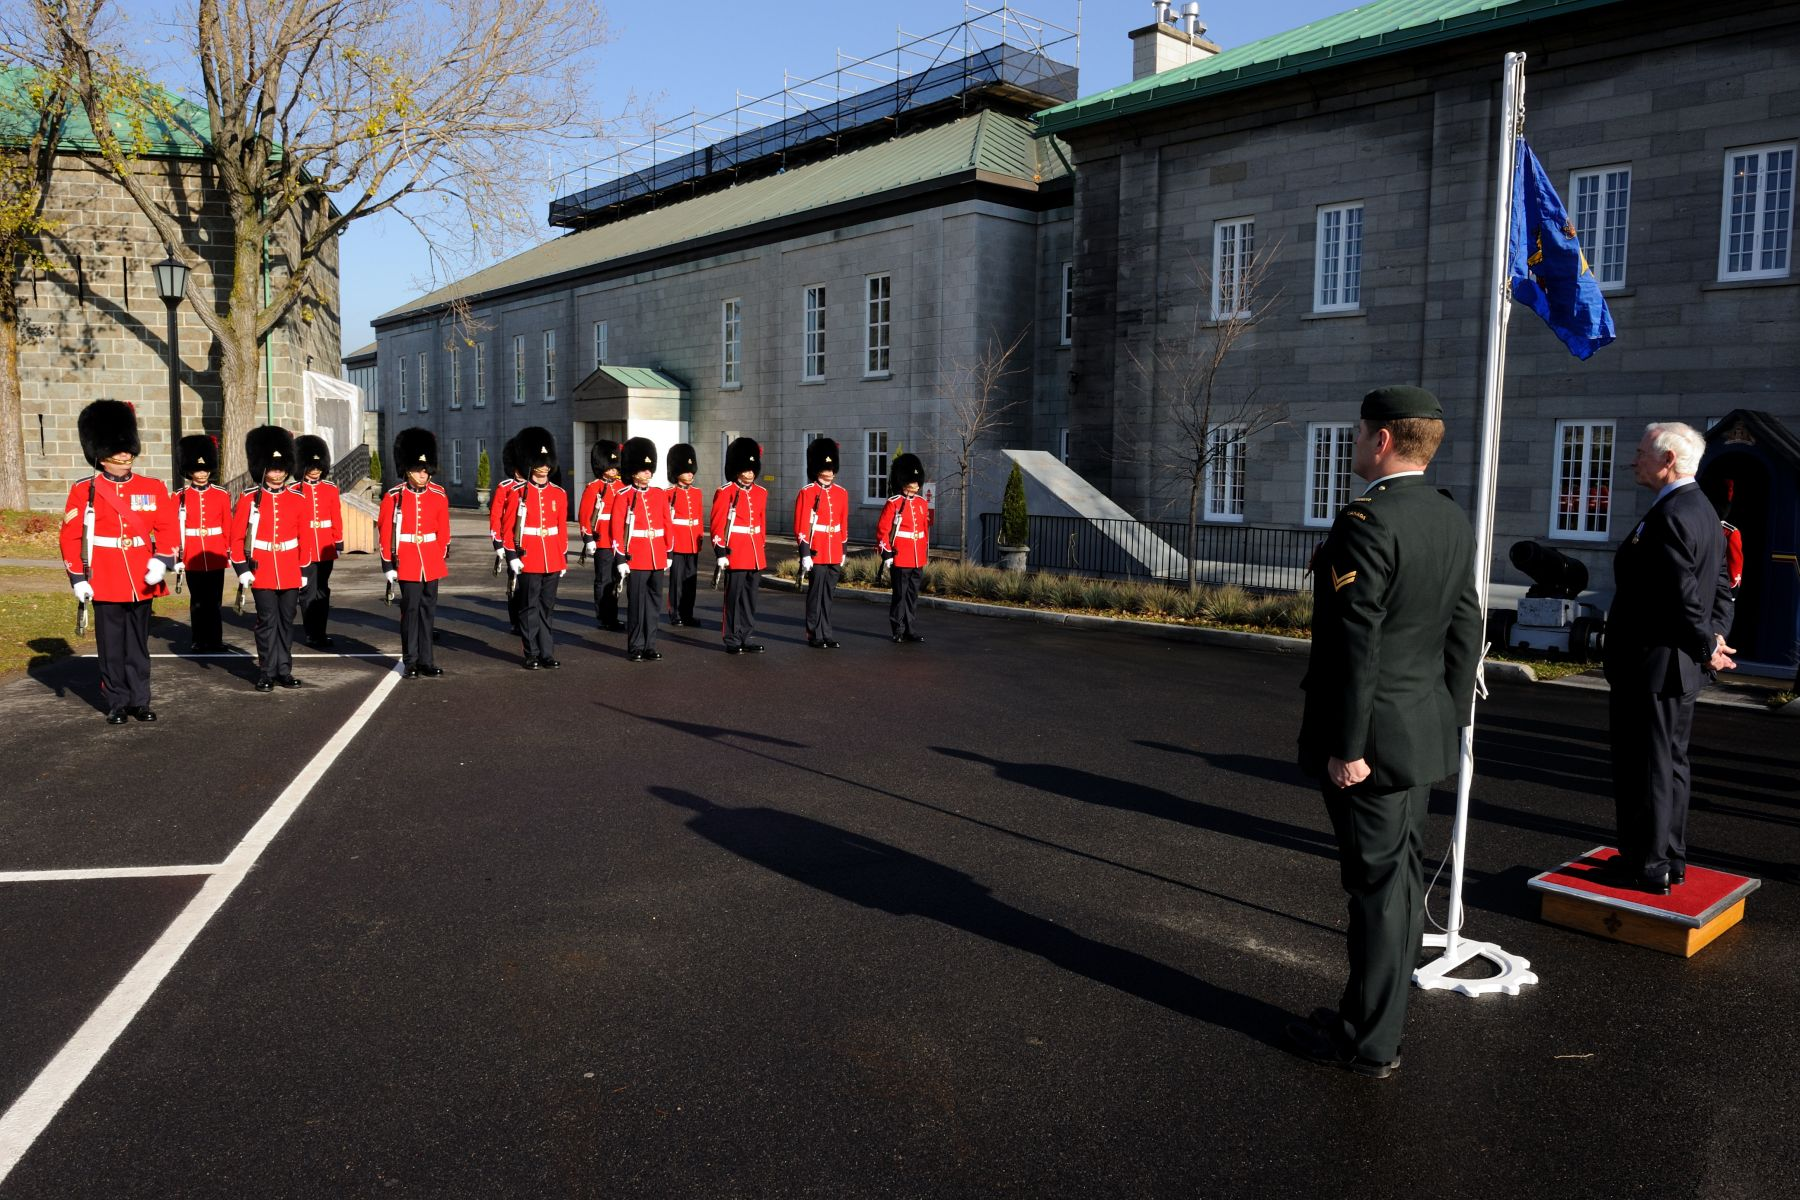 His Excellency was welcomed to the Citadelle of Québec by a royal salute.